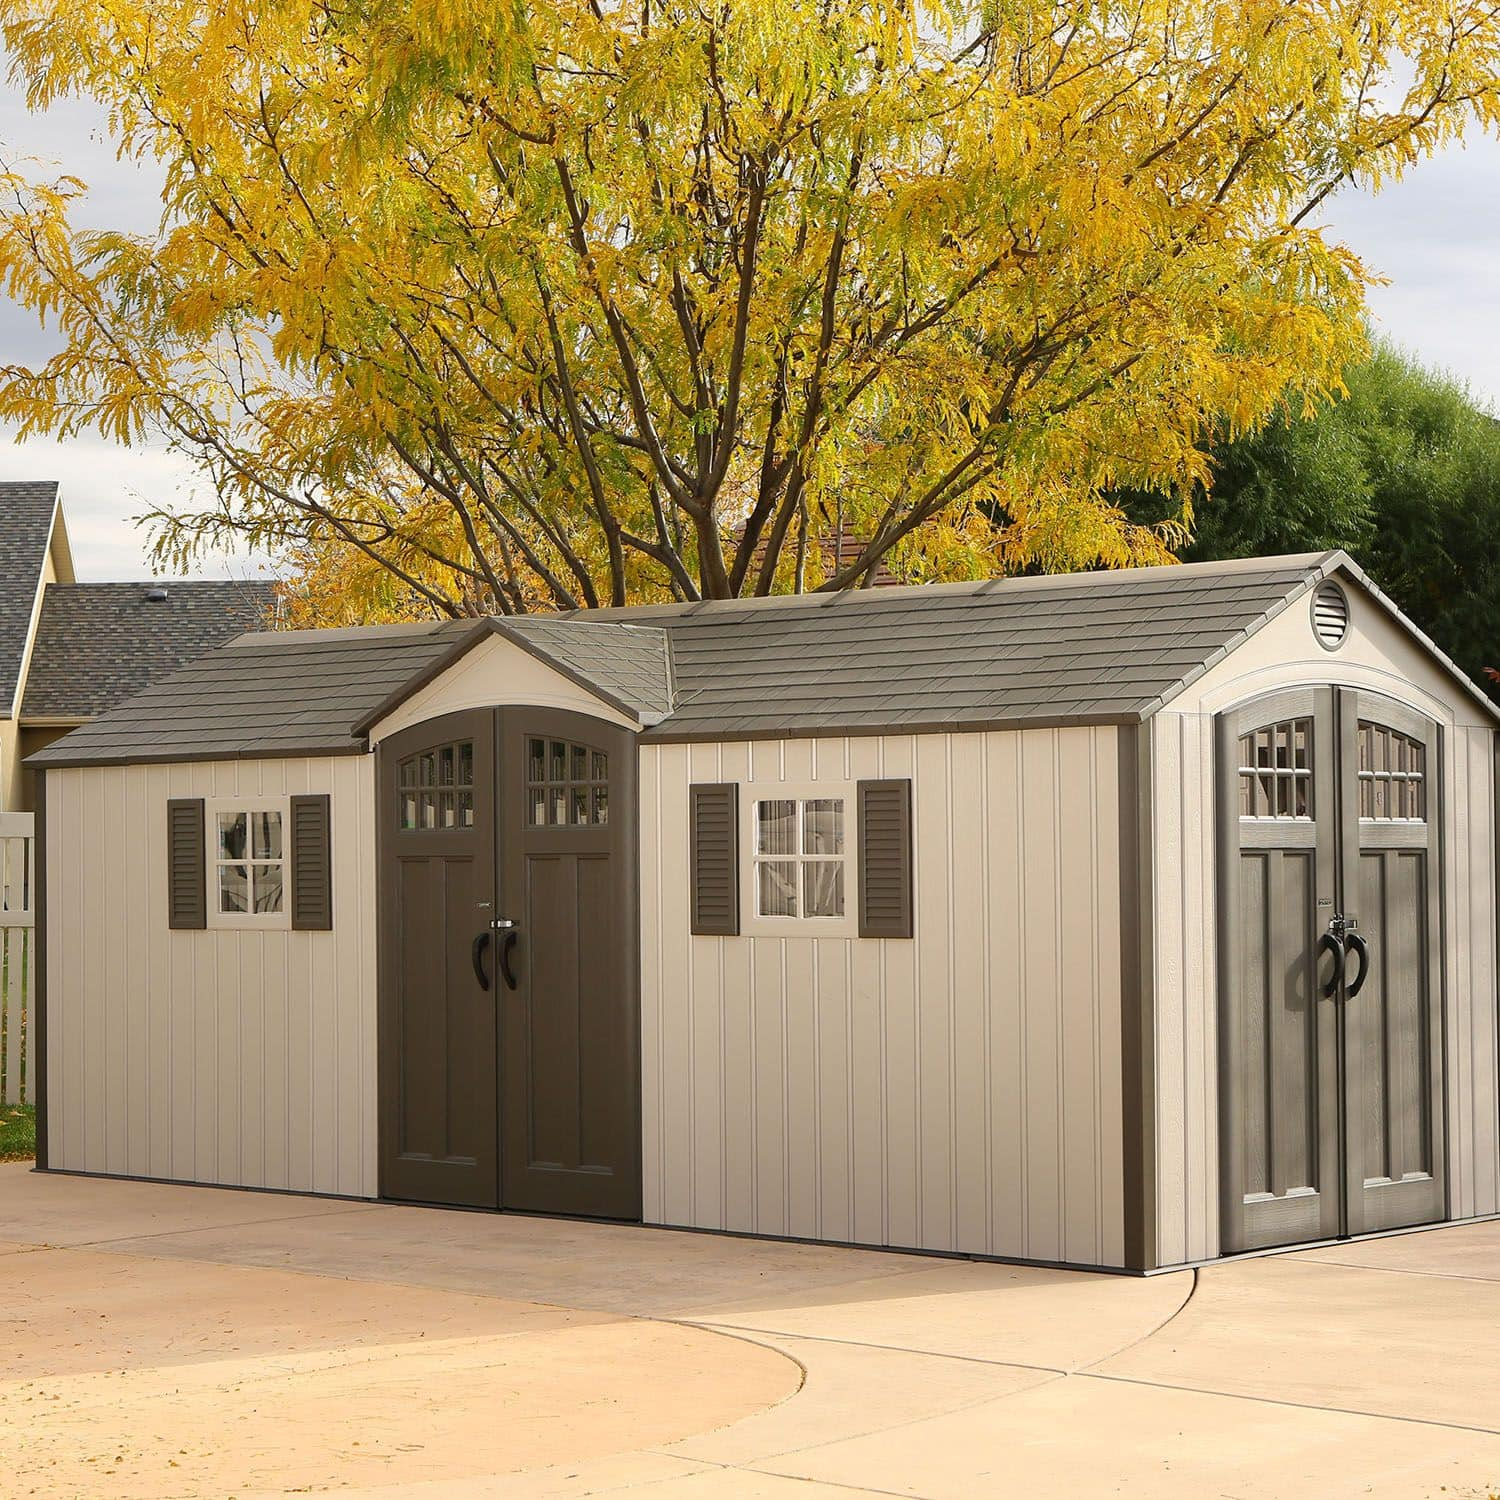 Lifetime 20' x 8' Outdoor Storage Shed Building $1,999 at Sam's Club